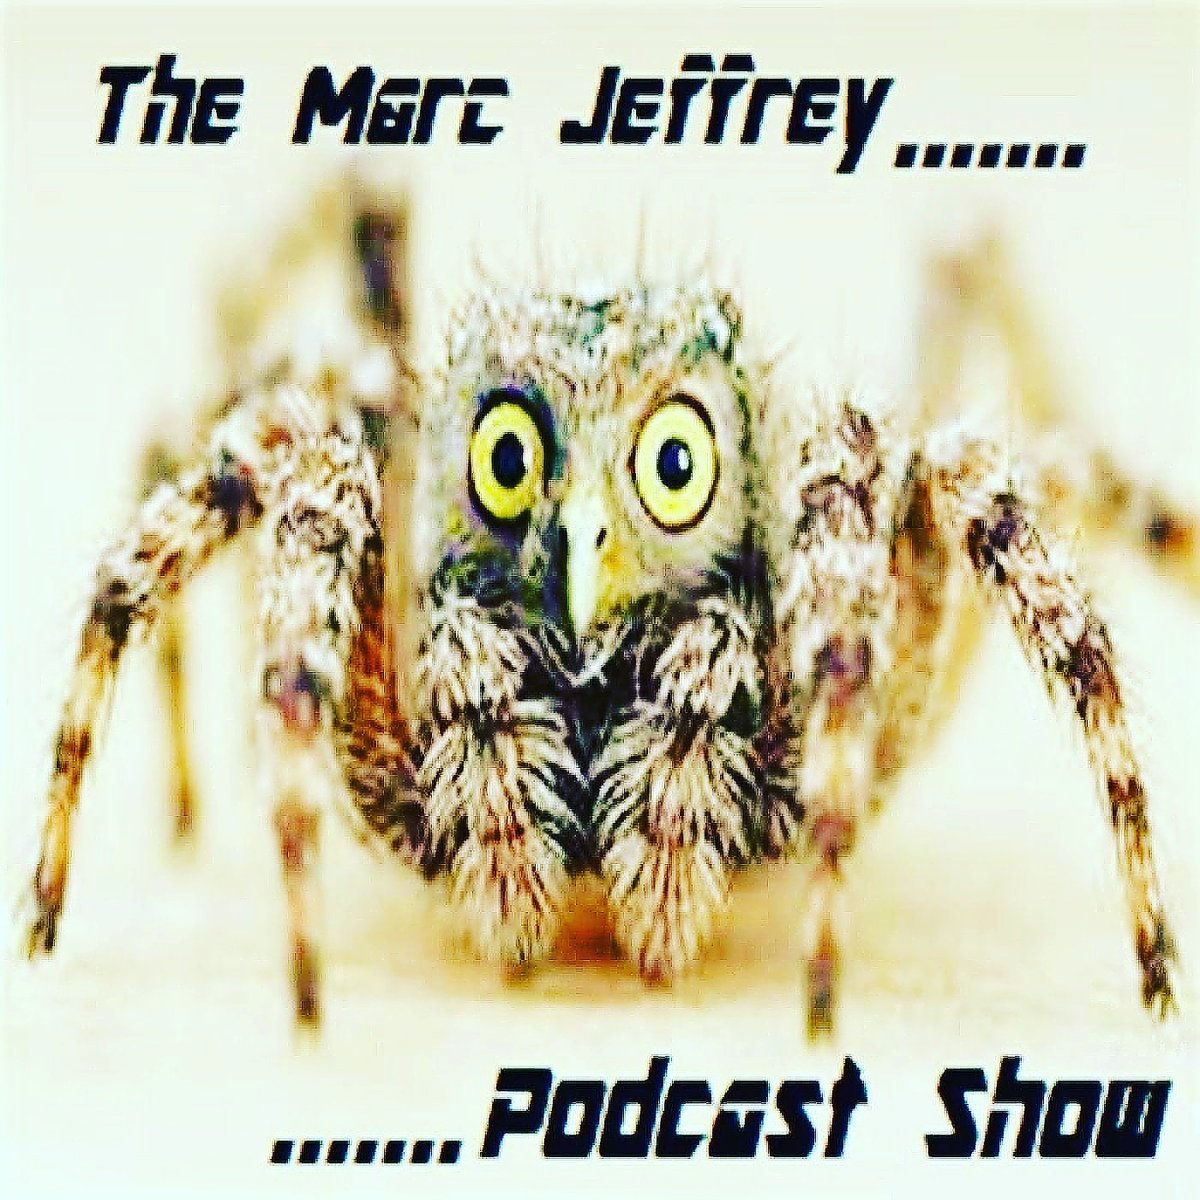 #32 take a listen  #mentalhealth #addiction #lasvagasshooting #LiamGallagher #russellbrand  #Britpodscene   http:// themarcjeffreypodcastshow.libsyn.com/32-world-menta l-health-day-with-sam-de-la-haye &nbsp; … <br>http://pic.twitter.com/jrrwEsfCOu